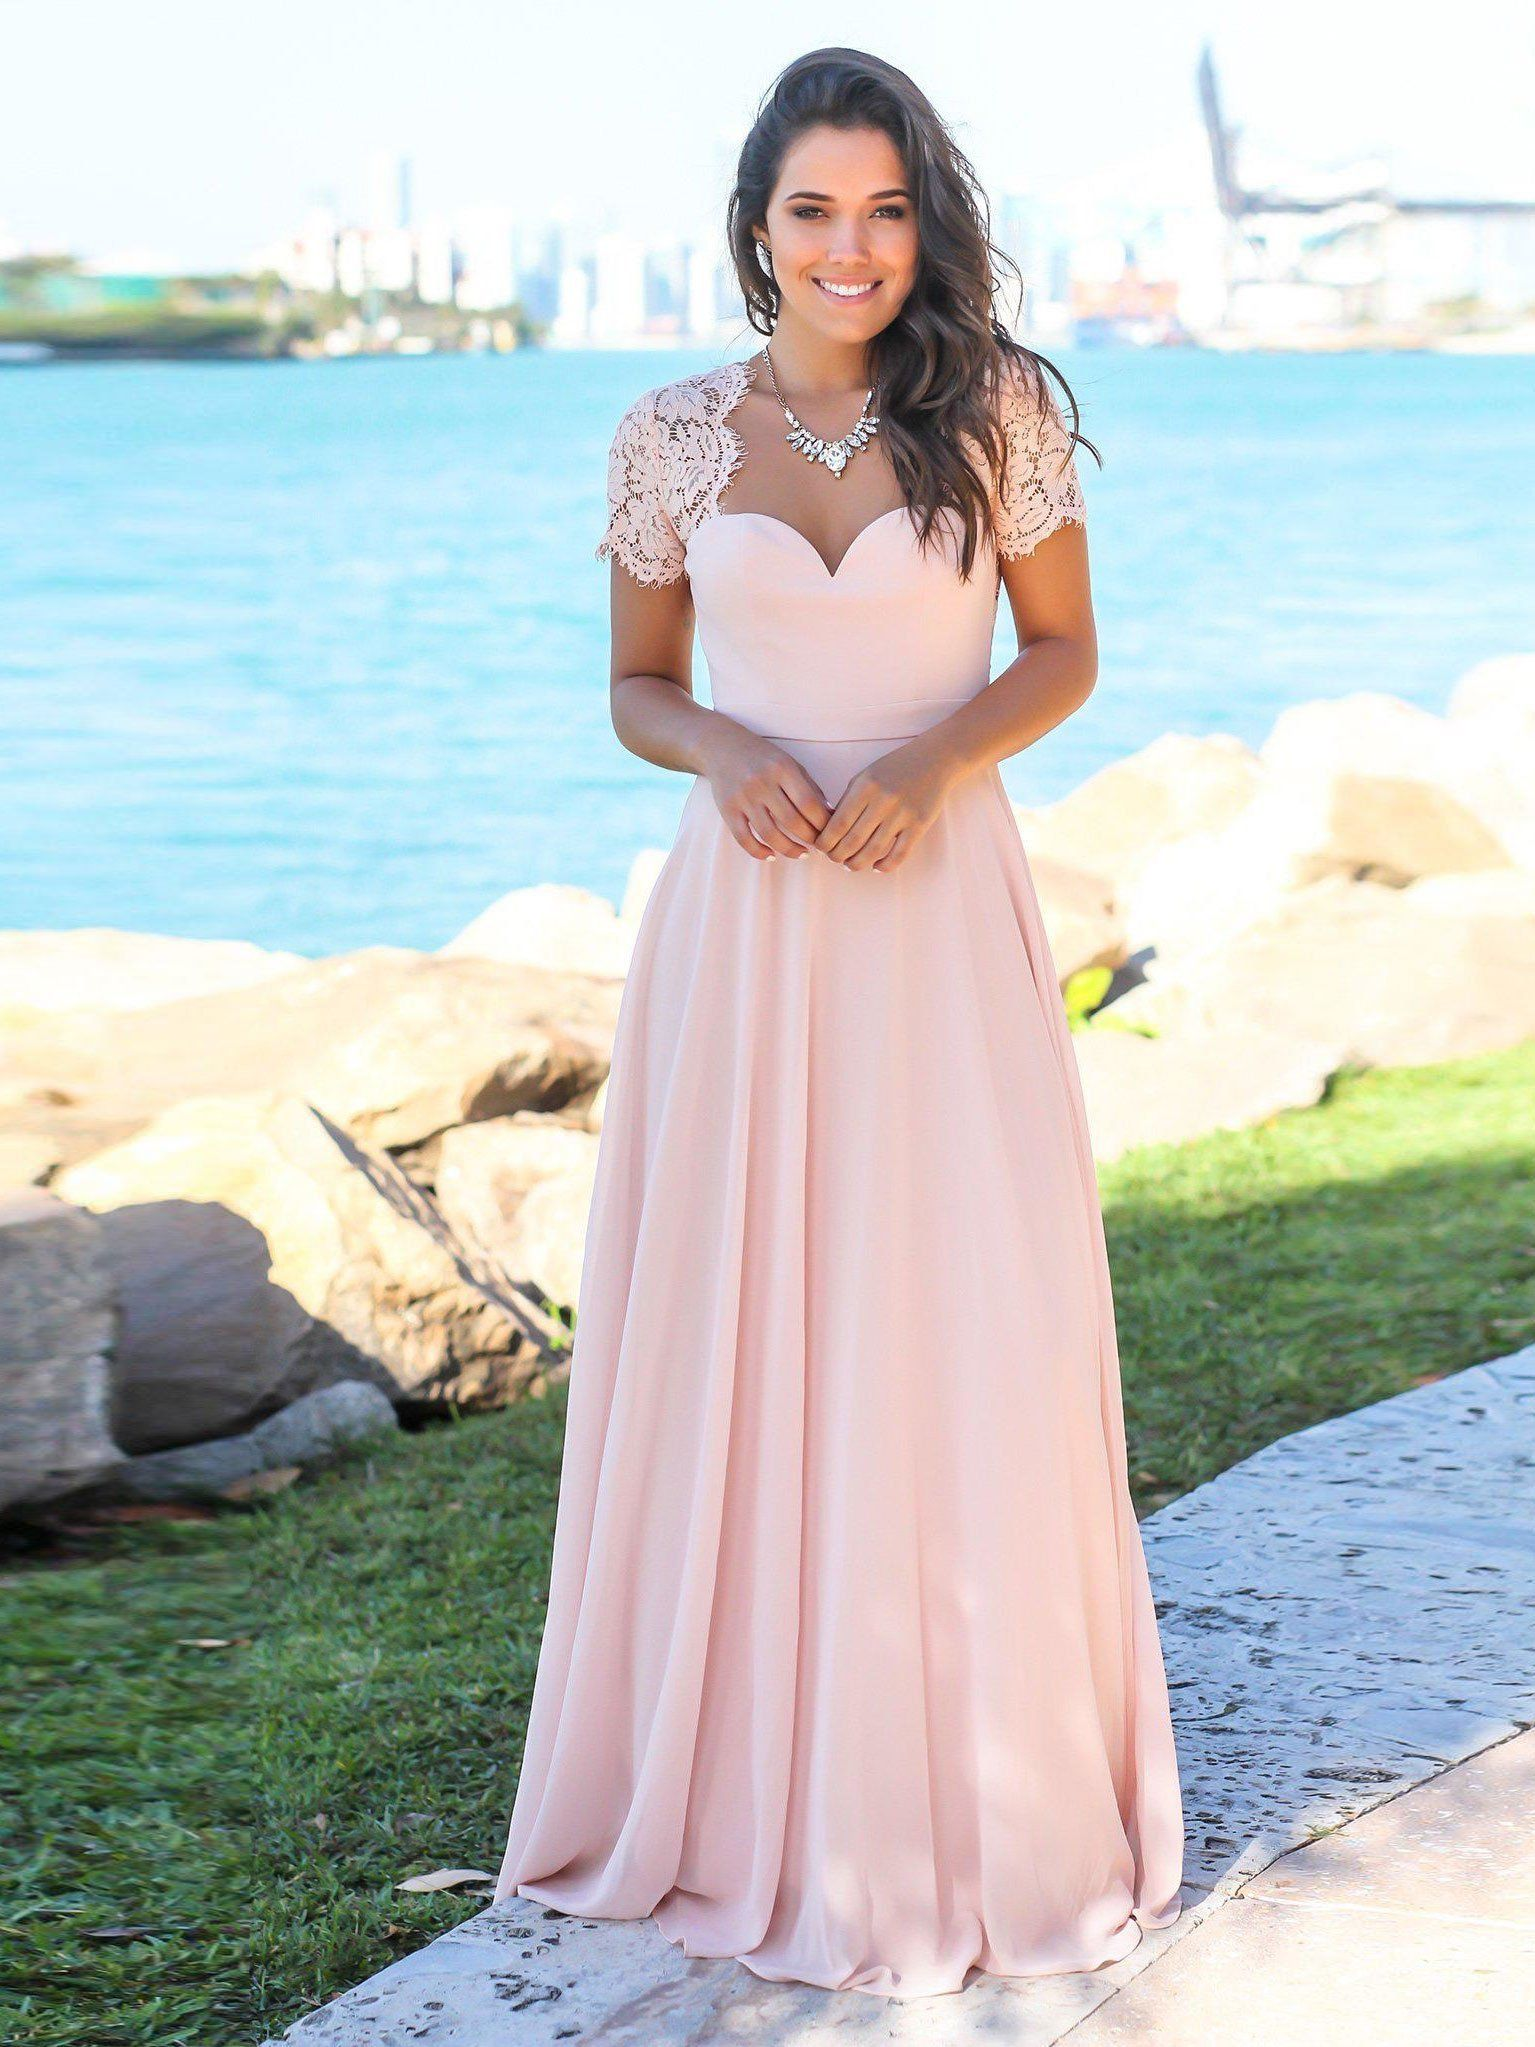 Dresses to wear to a destination wedding as a guest  Blush Pink Formal Maxi Dresses Open Back Lace Sleeve Beach Wedding